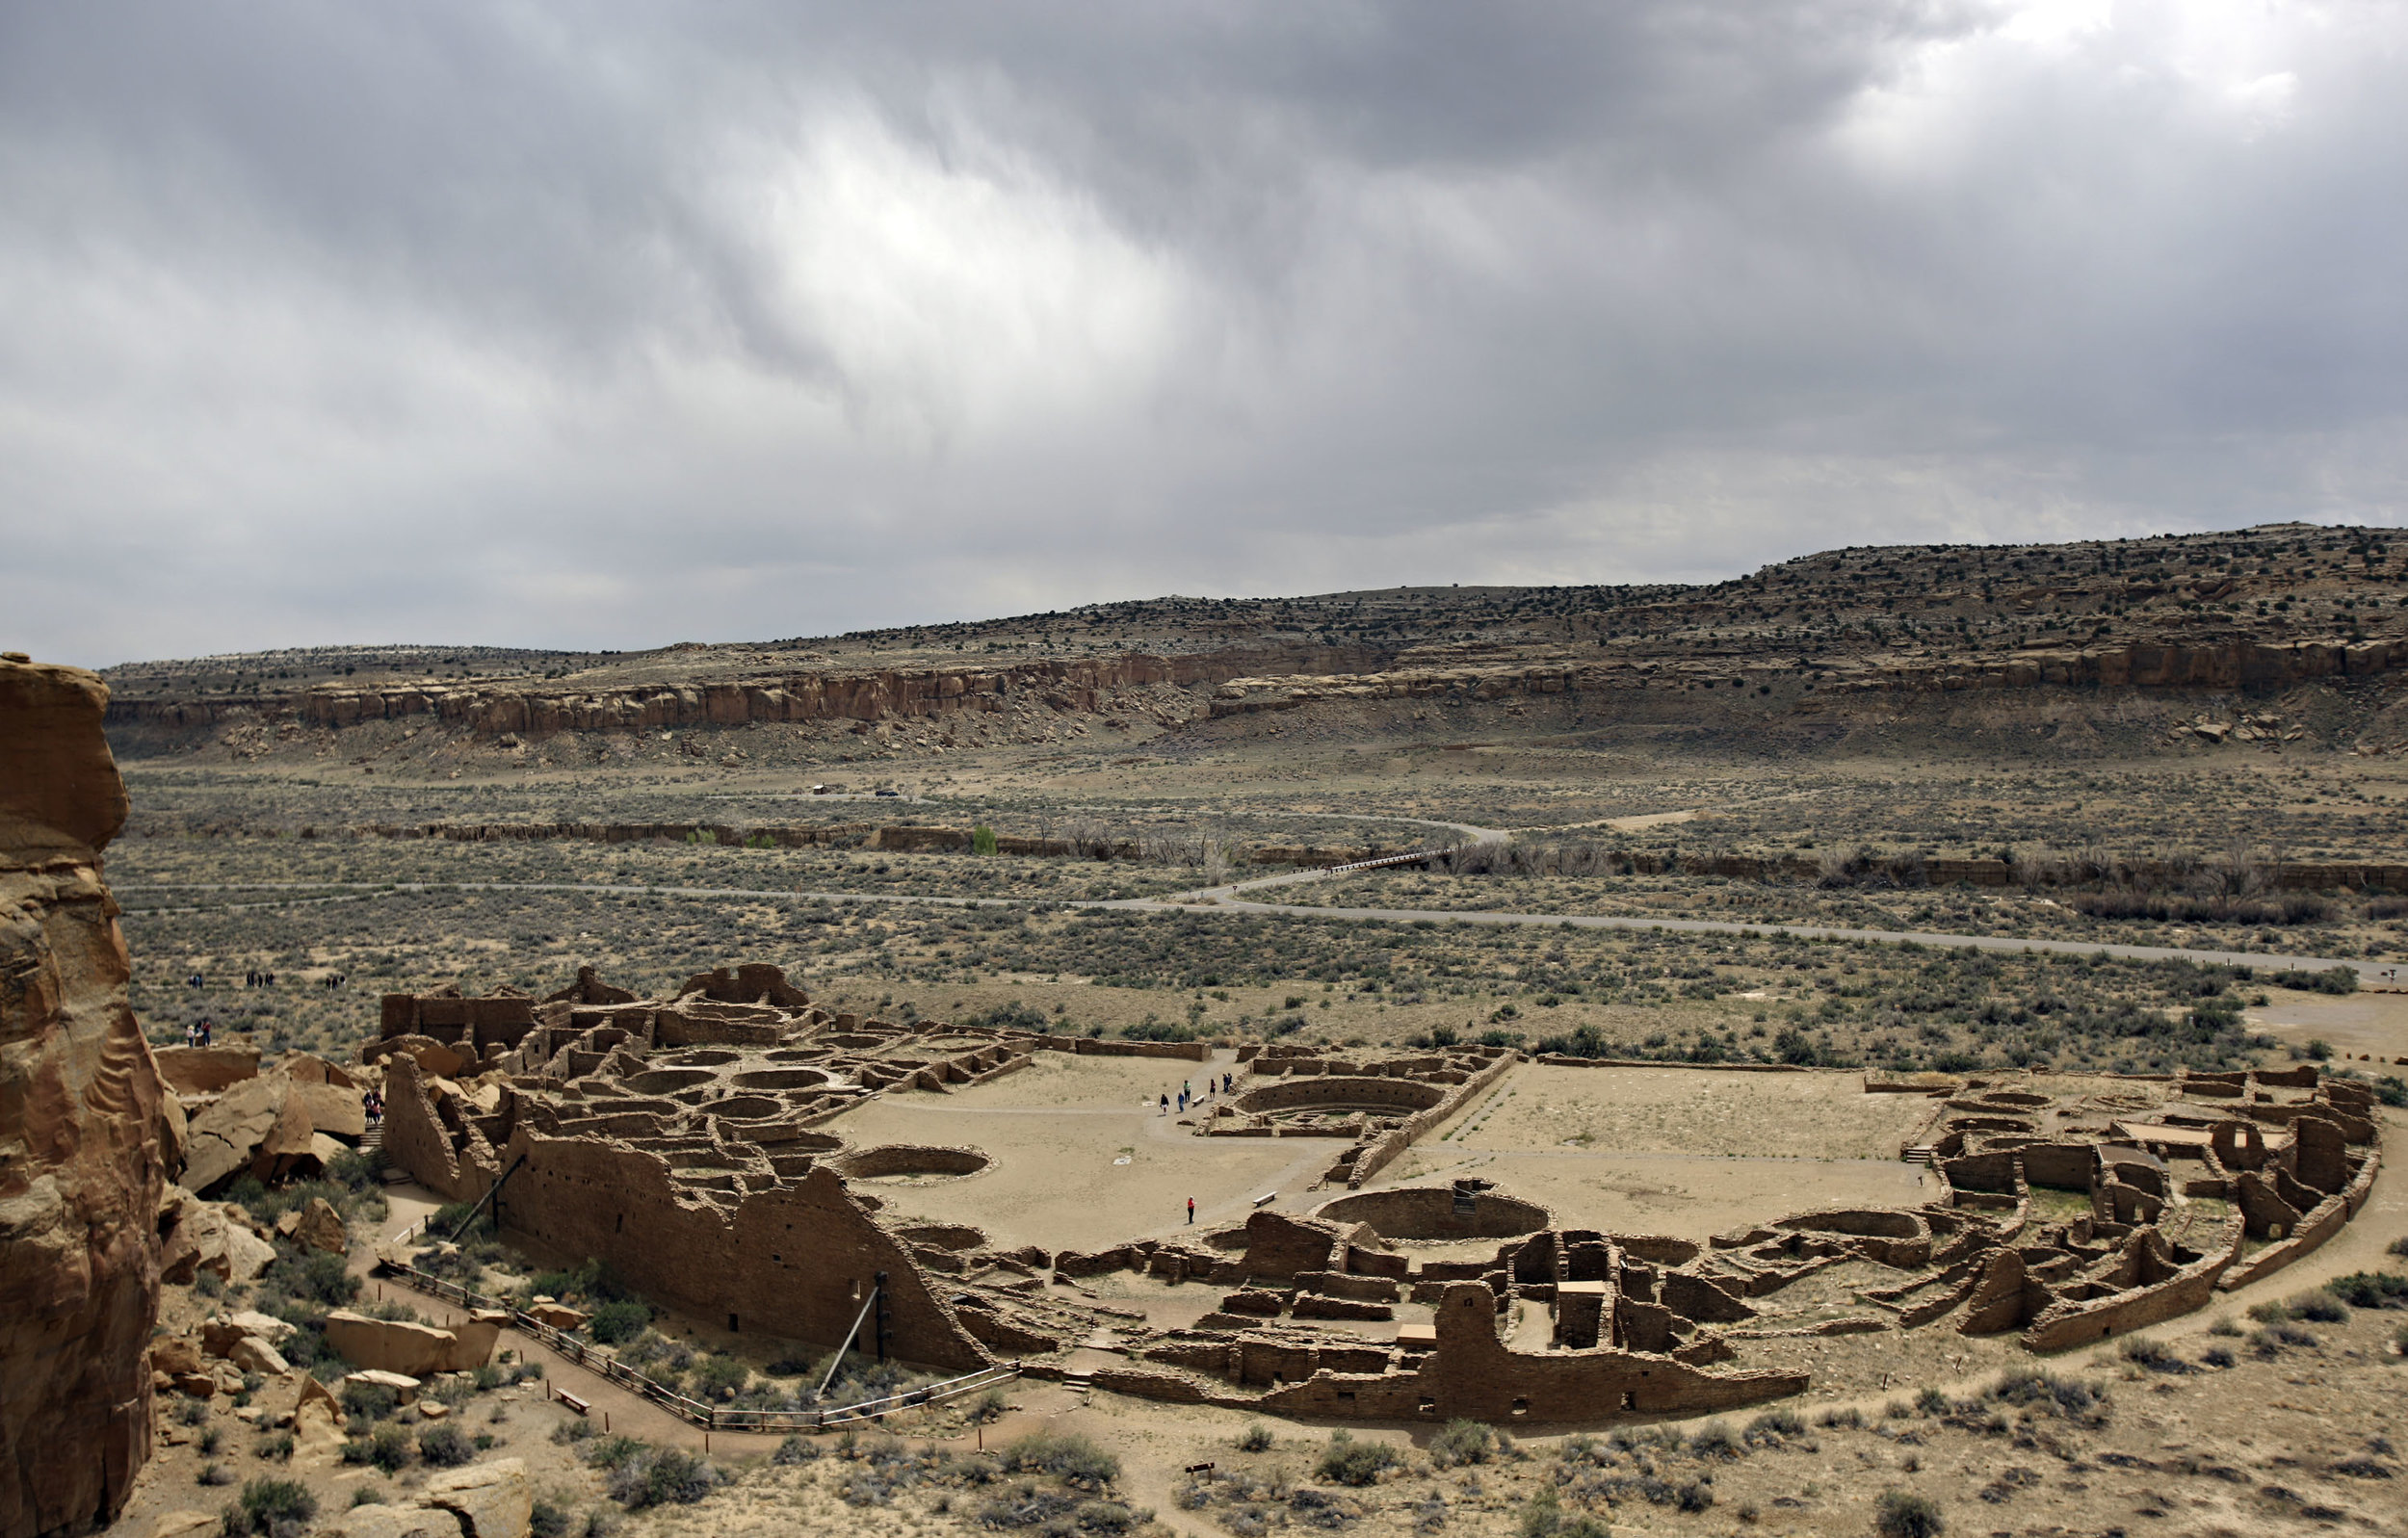 Pueblo Bonito as seen from the overlook at Chaco Canyon, Thursday, April 26, 2012. (Morgan Petroski/Albuquerque Journal)